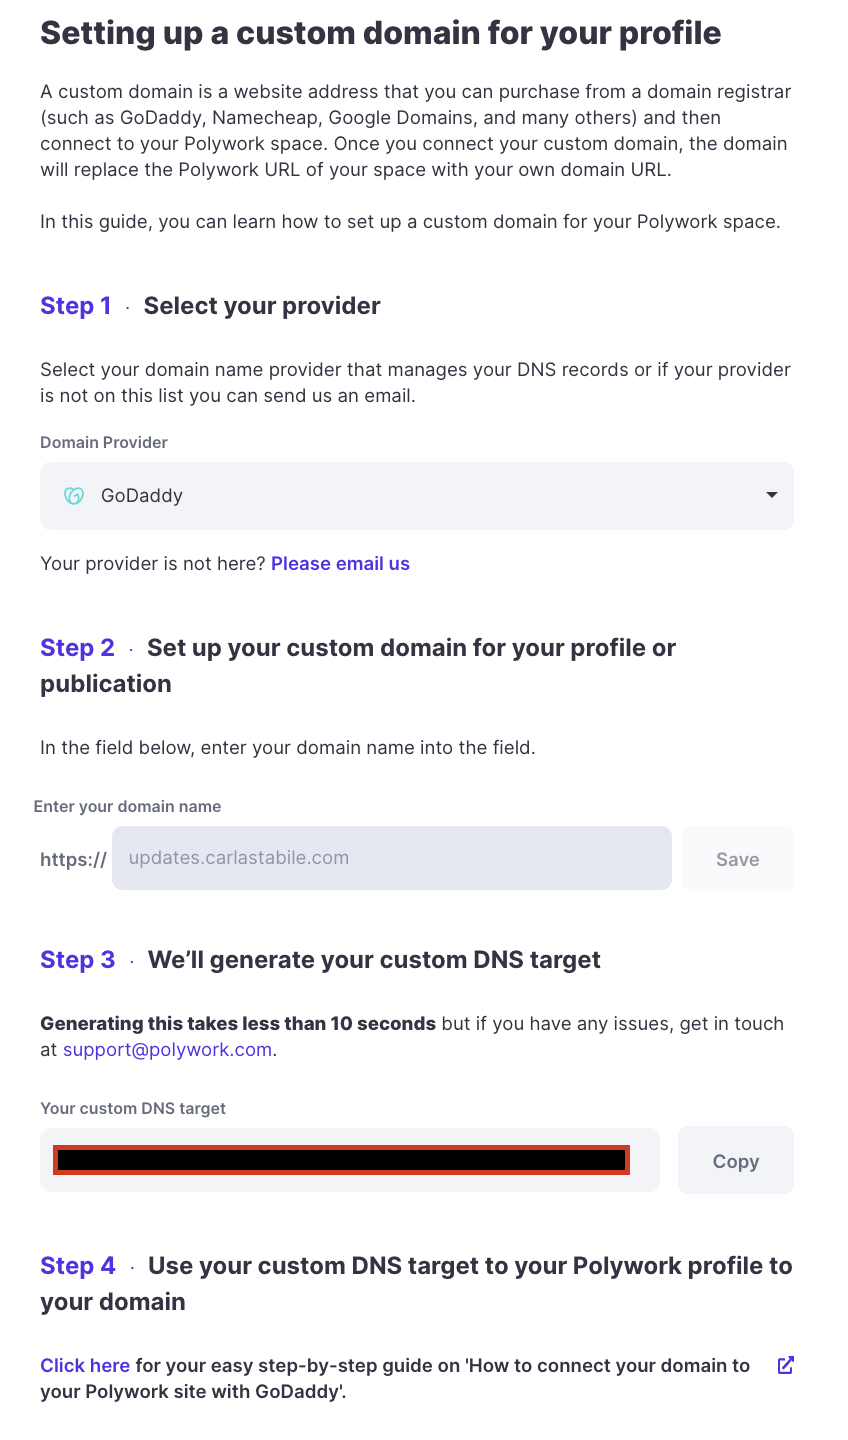 a screenshot from Polywork's settings with a step-by-step guide on how to setup a domain